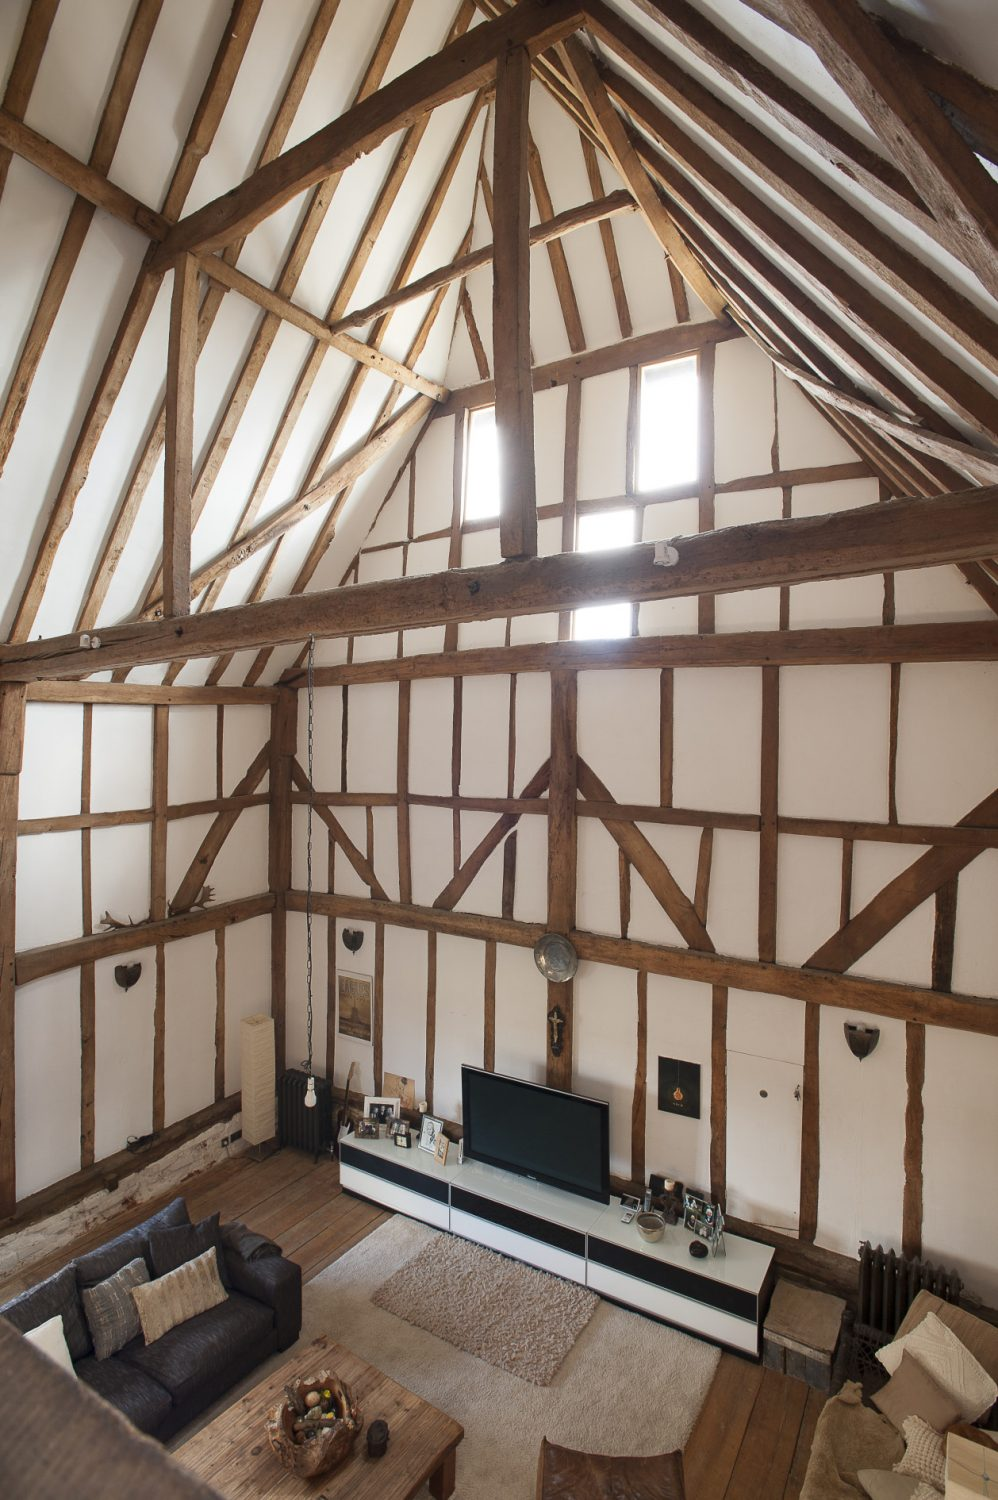 When Lorraine took over the property a huge amount of great work had already been done by its previous owner. Her challenge was to take over the taming of this wonderful monster of a building and make from it a stylish but warm and welcoming family home